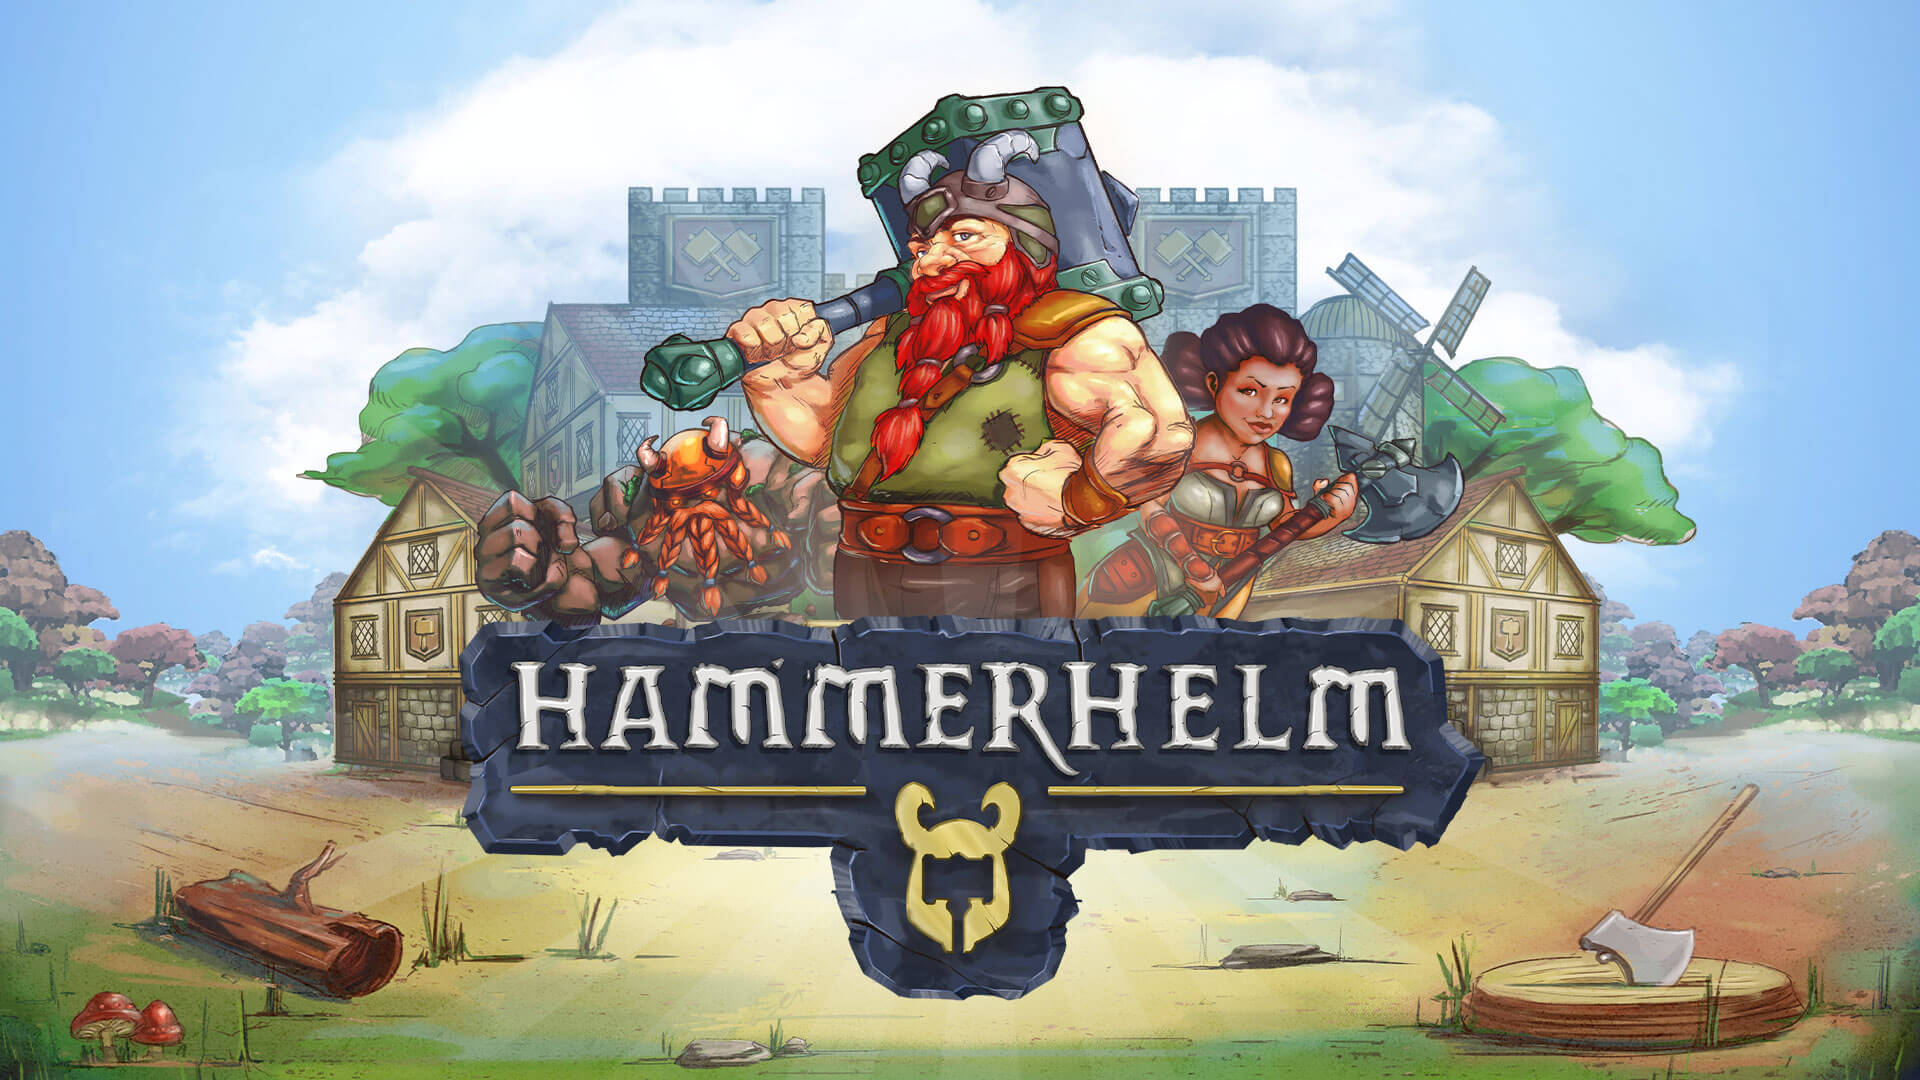 HammerHelm v1.0 launches out of Early Access on Steam on April 30th